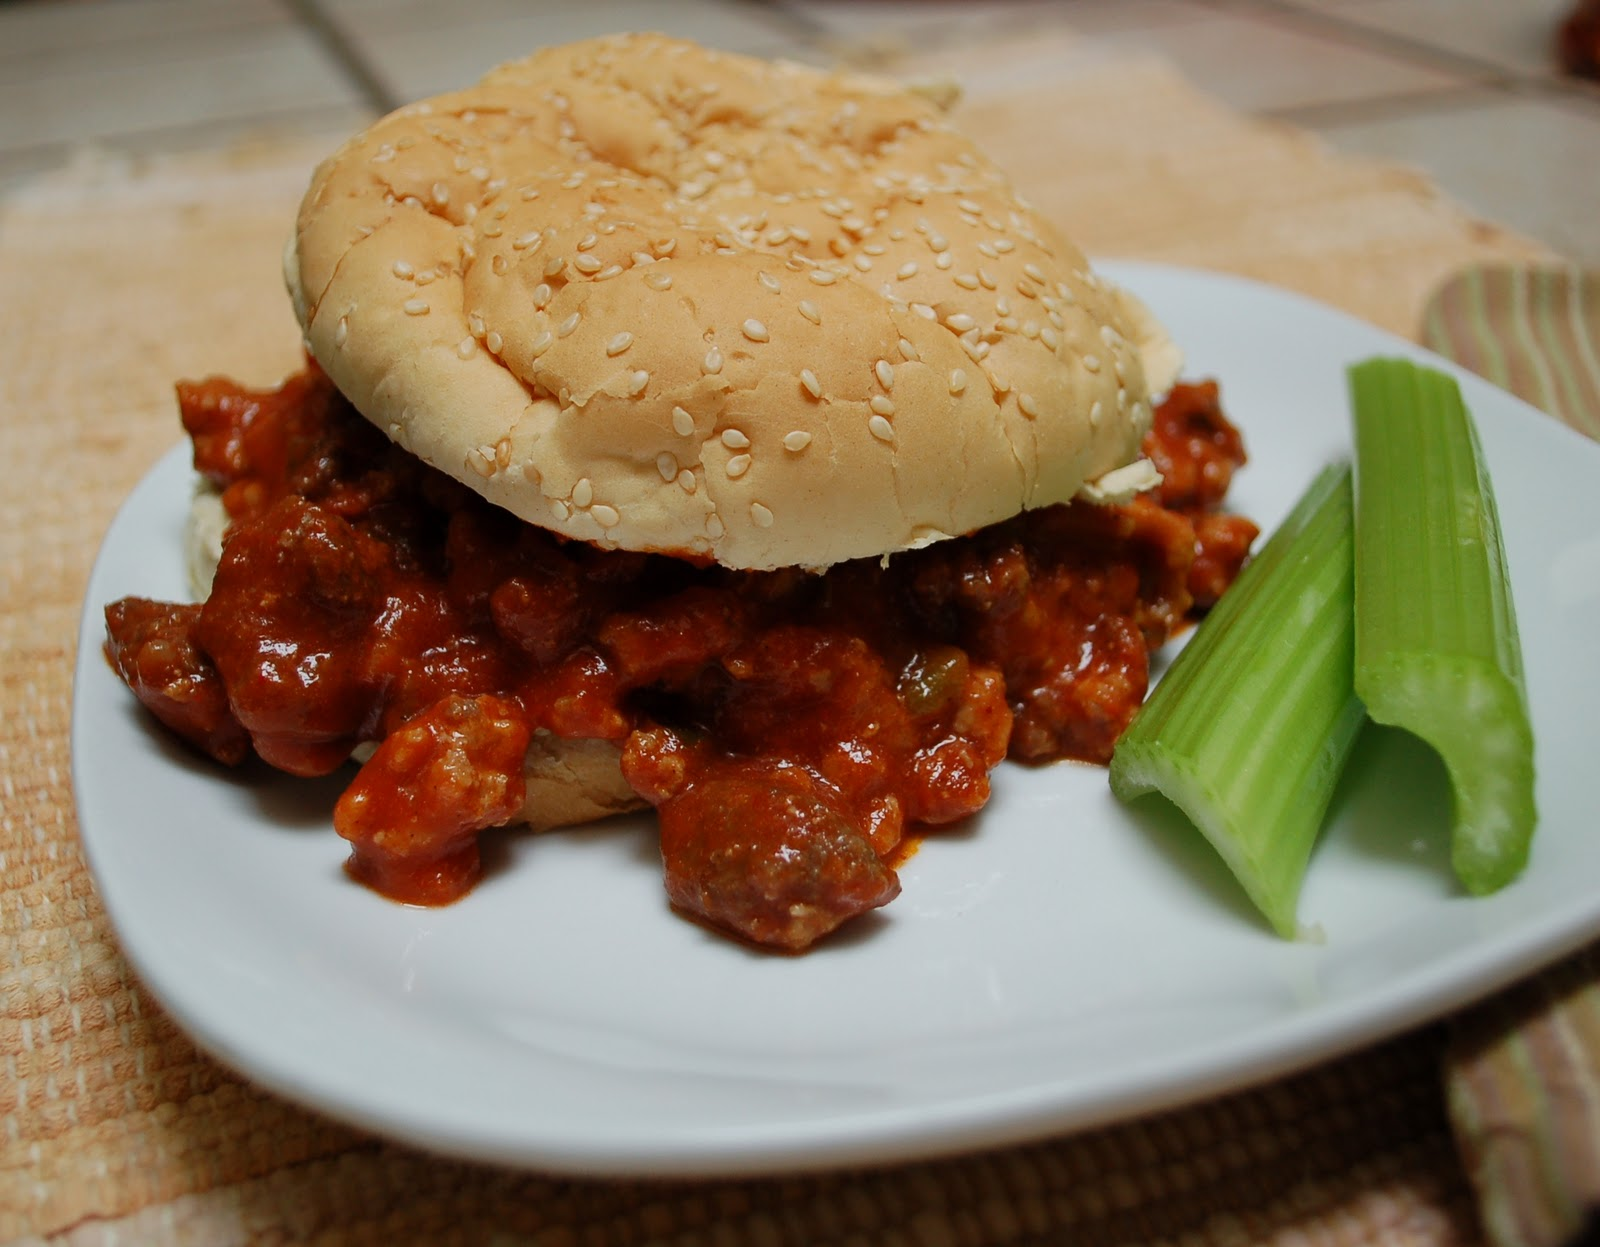 The Spice Garden: Venison Sloppy Joes